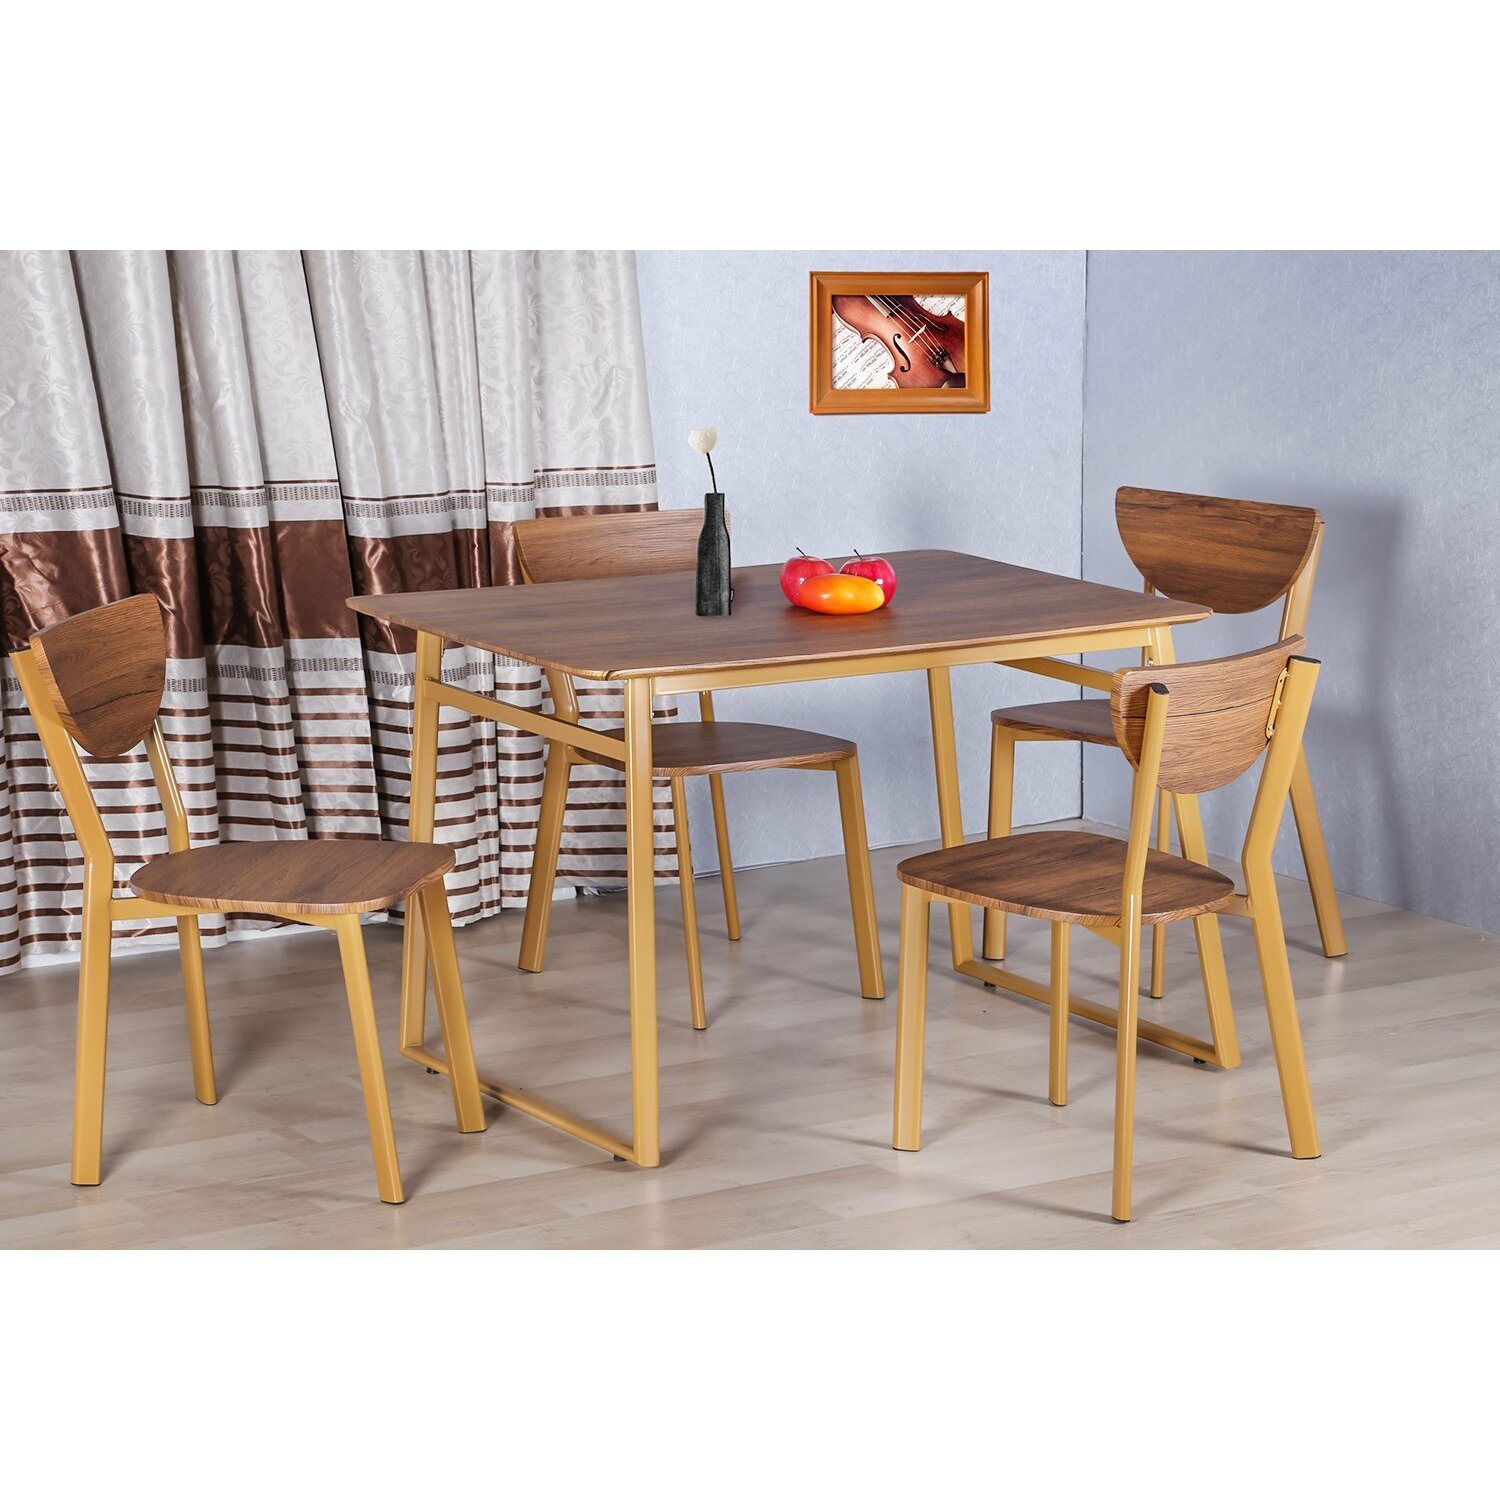 Merax merax stylish 5 piece dining set dining table set for 5 piece dining set